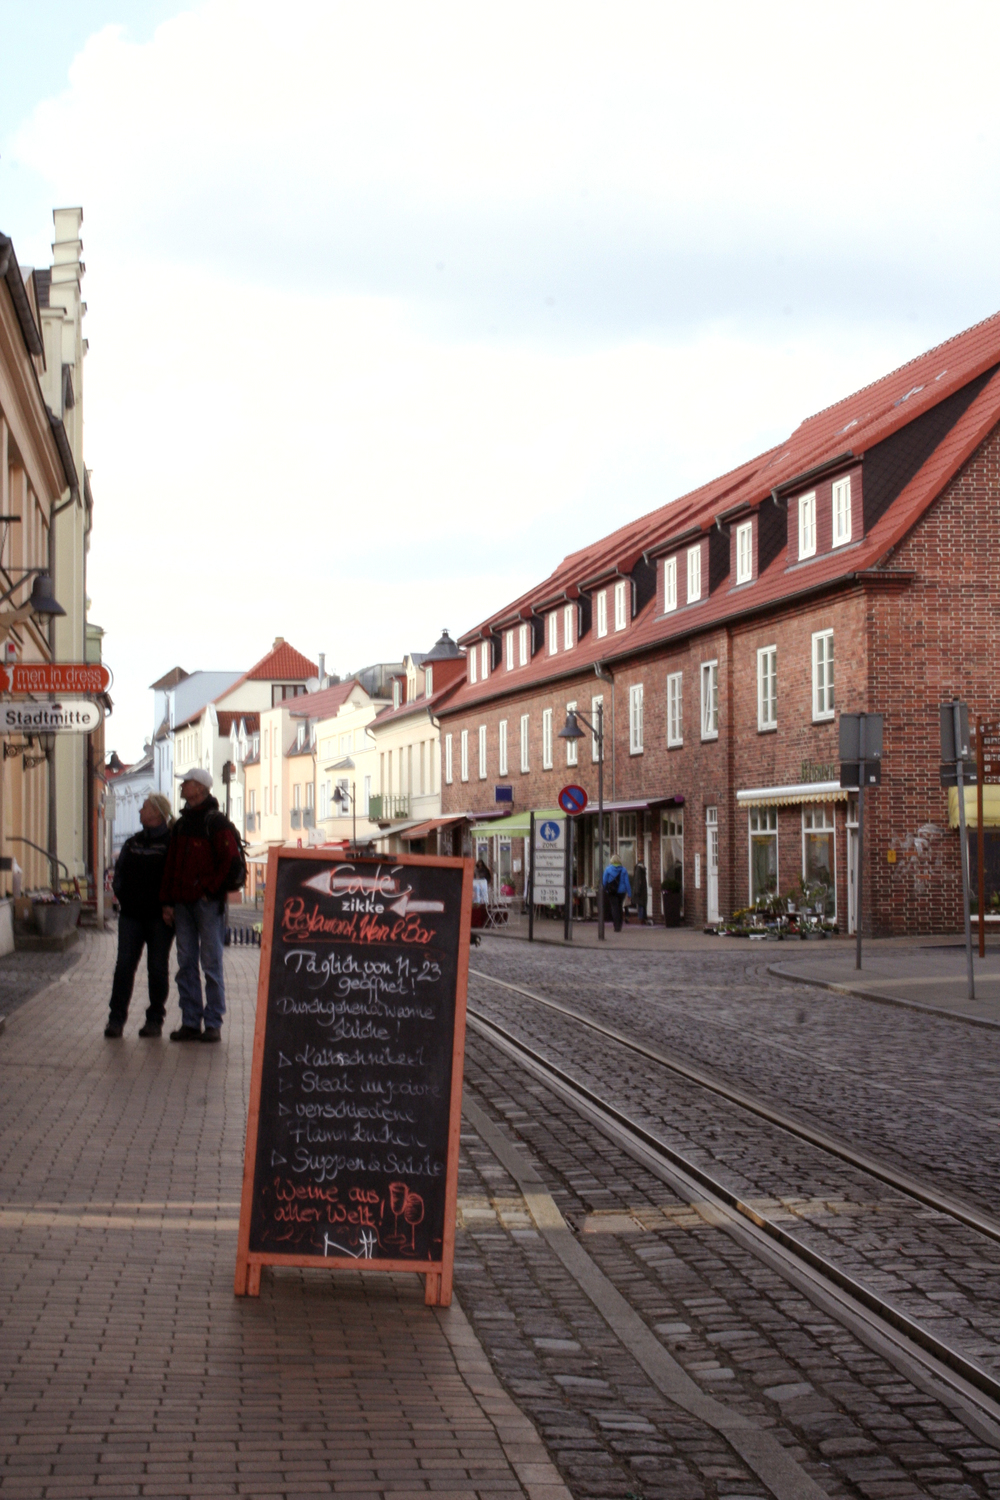 This is a village within the area of Rostock, called Bad Doberan.